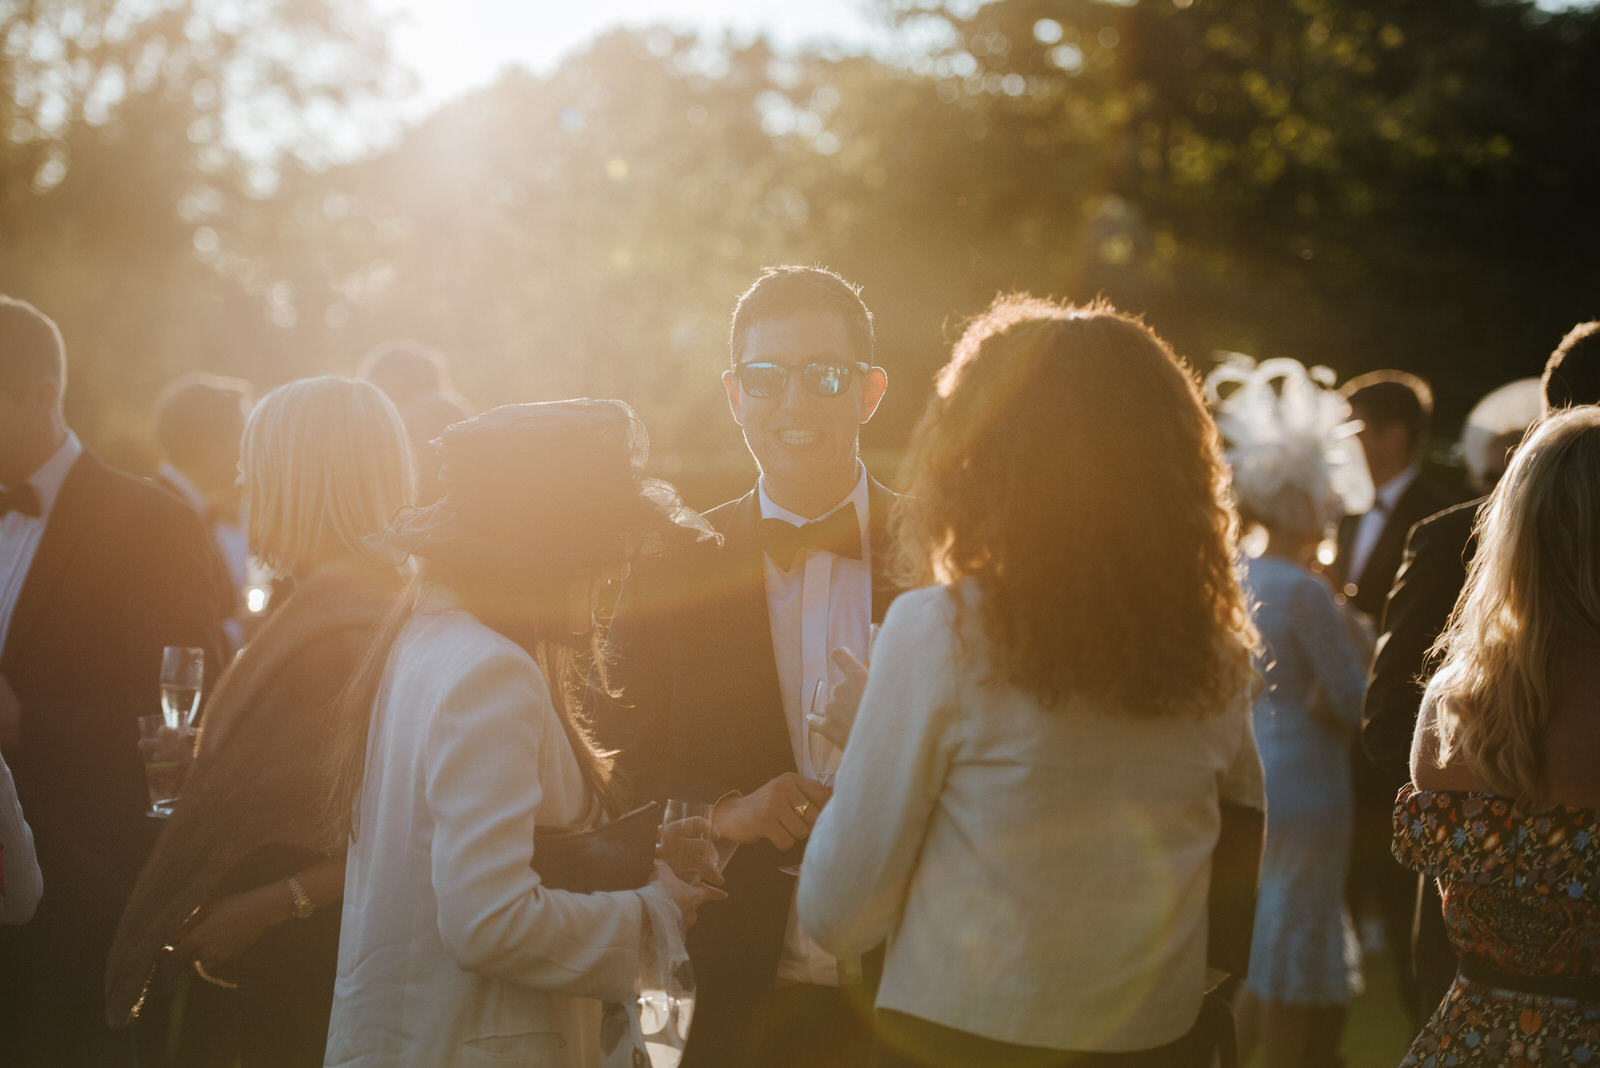 Sun-flare photo of guests talking to each other in garden